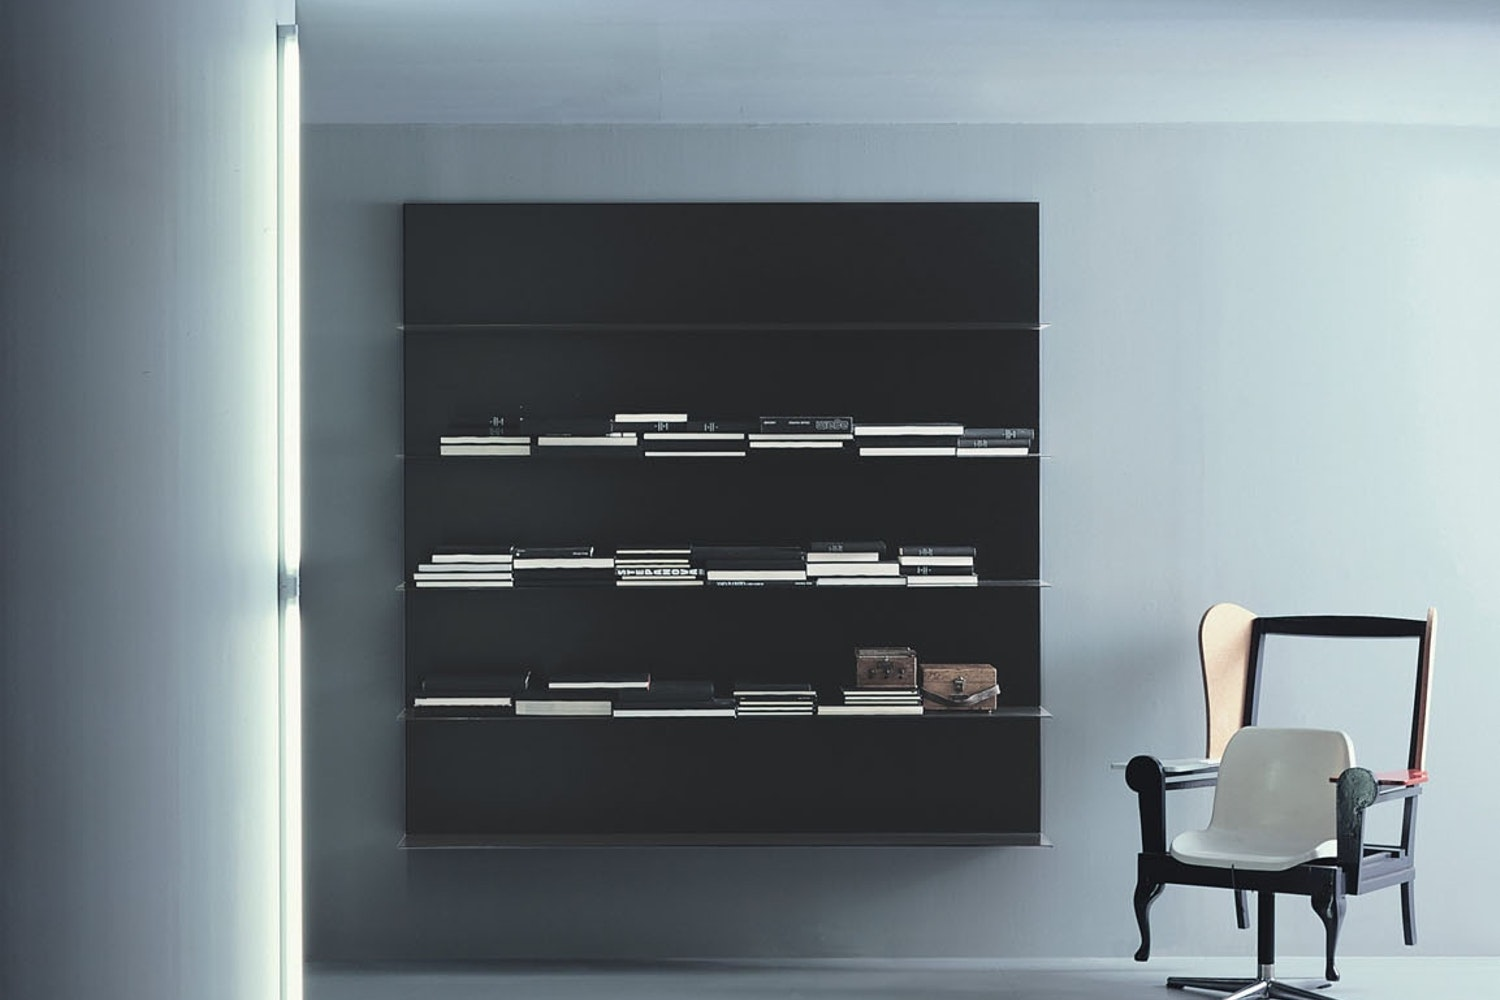 Load-It Wall Mounted Storage by Wolfgang Tolk for Porro